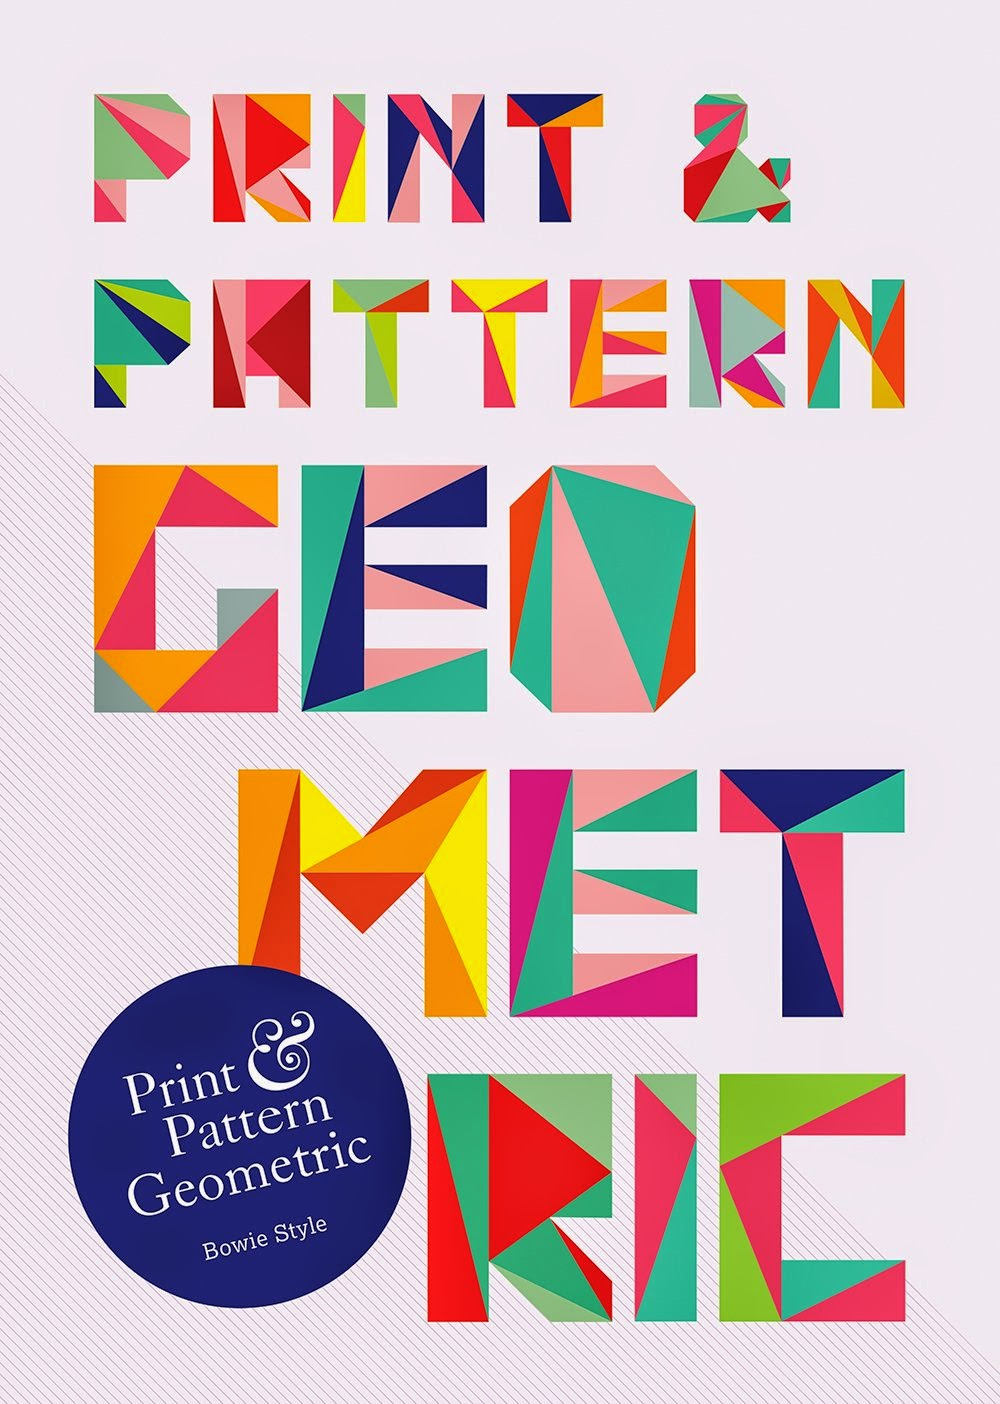 Featured in PRINT & PATTERN GEOMETRIC